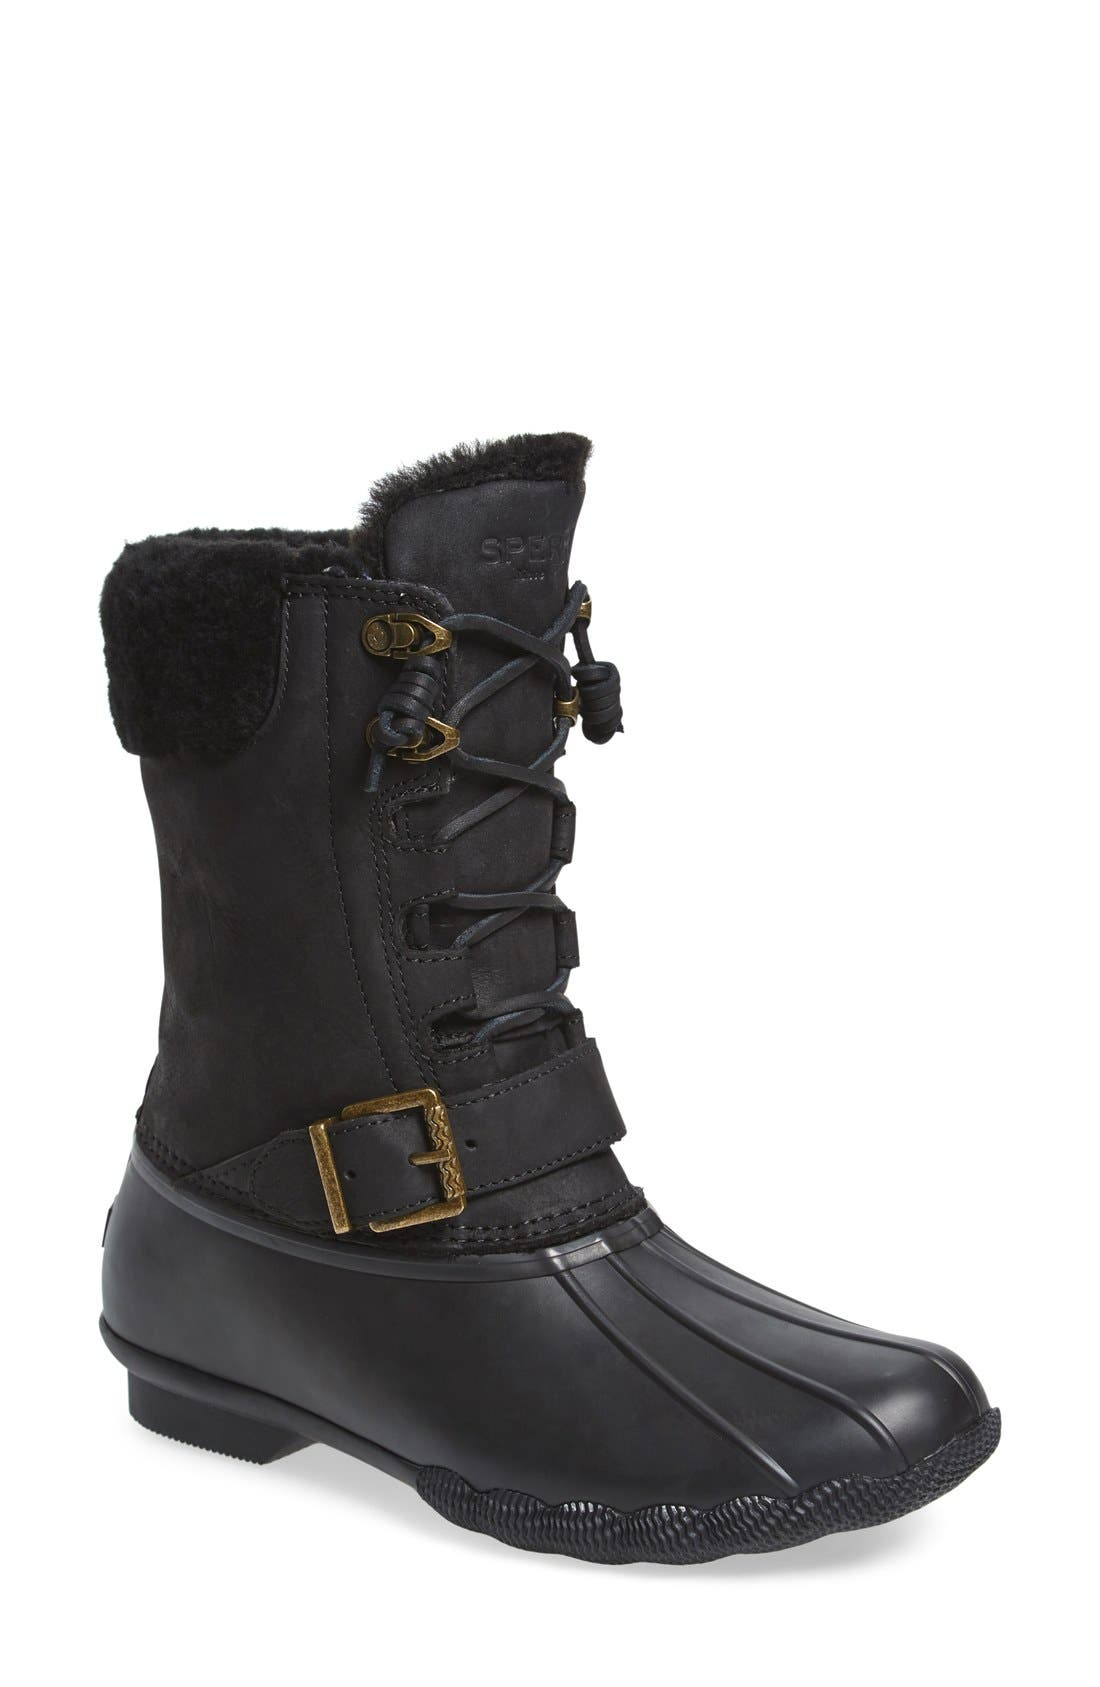 Alternate Image 1 Selected - Sperry Saltwater Misty Waterproof Rain Boot (Women)